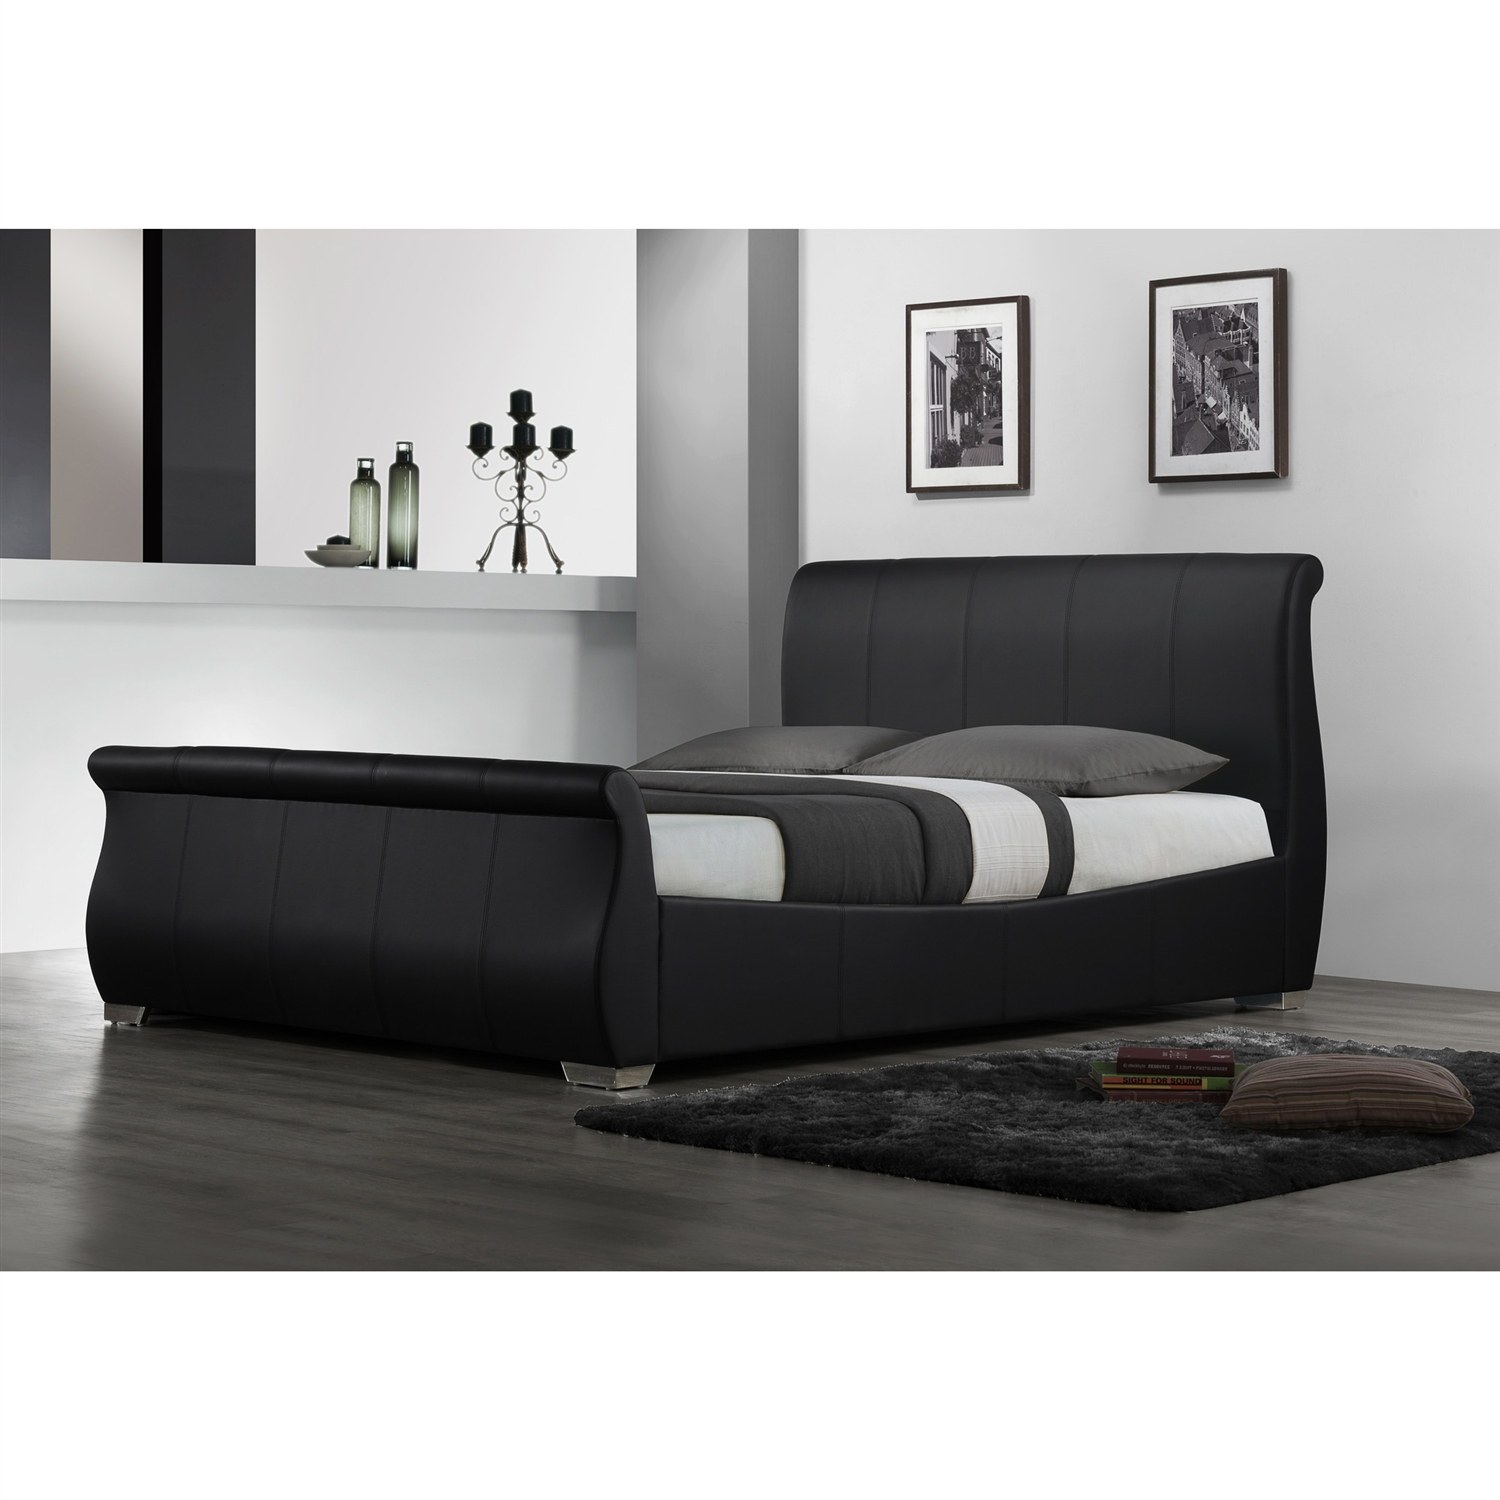 queen size modern sleigh style platform bed in black faux leather -